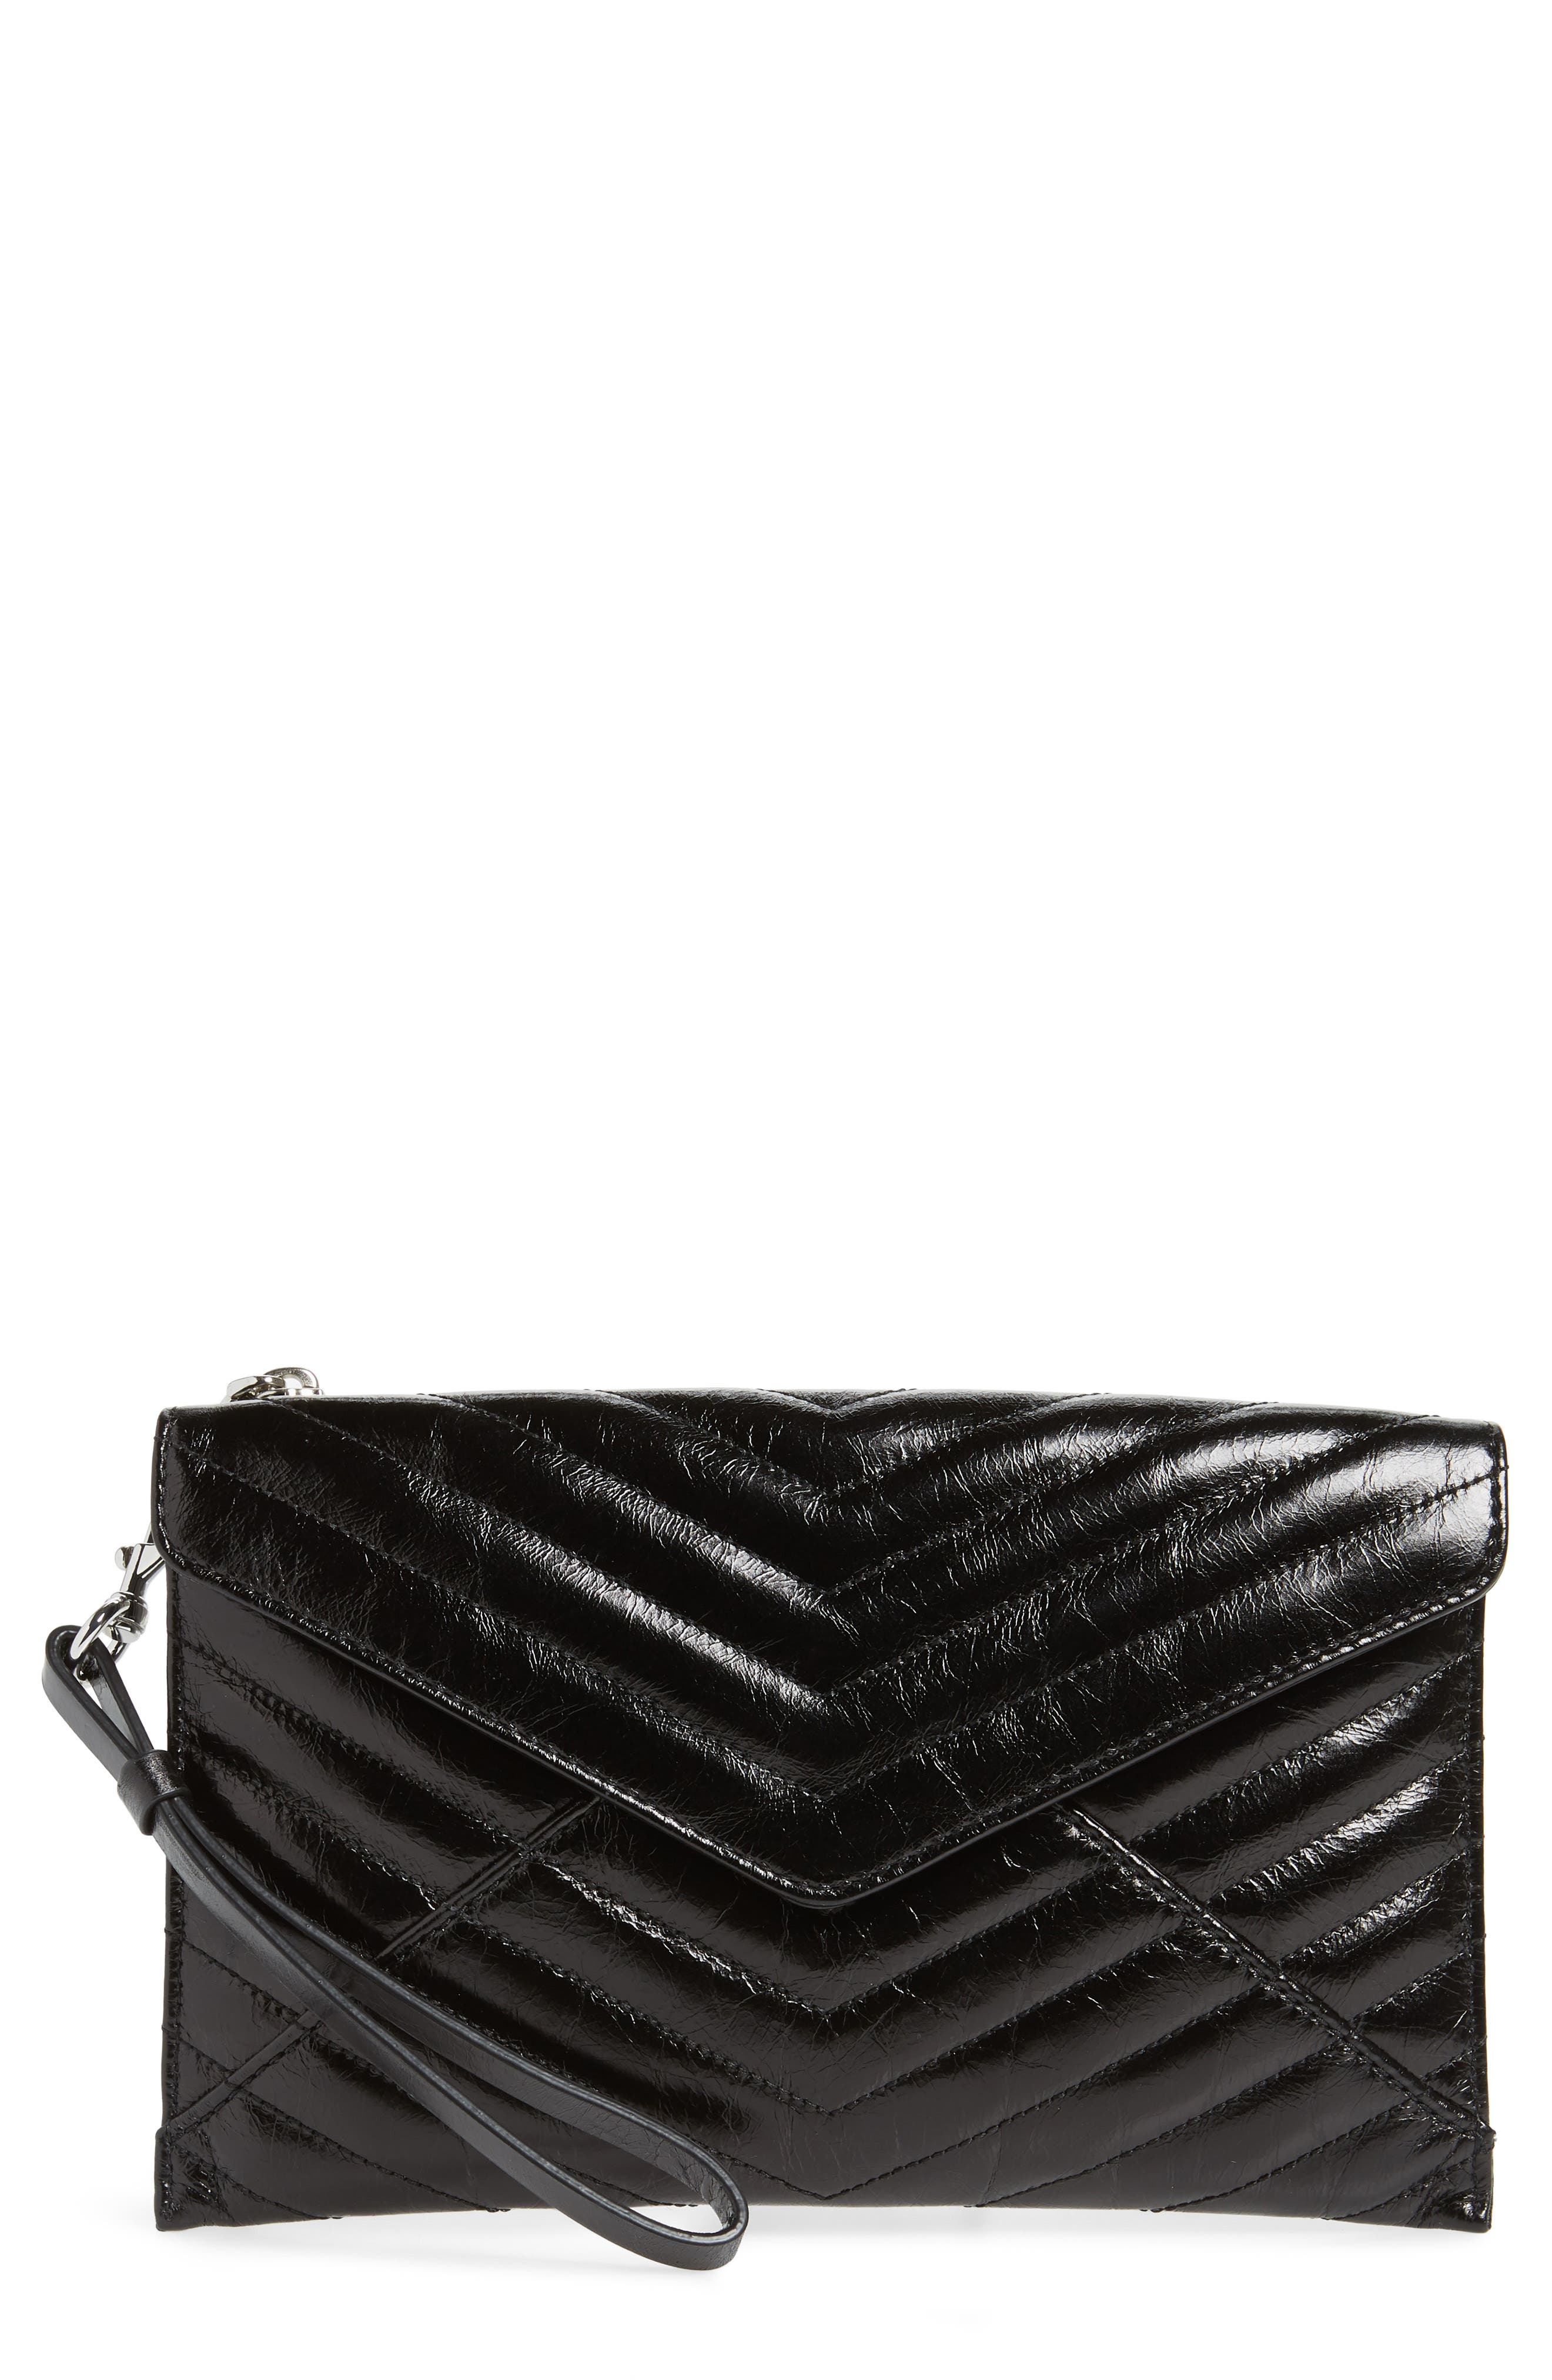 Leo Quilted Leather Envelope Wristlet Pouch Bag in Black